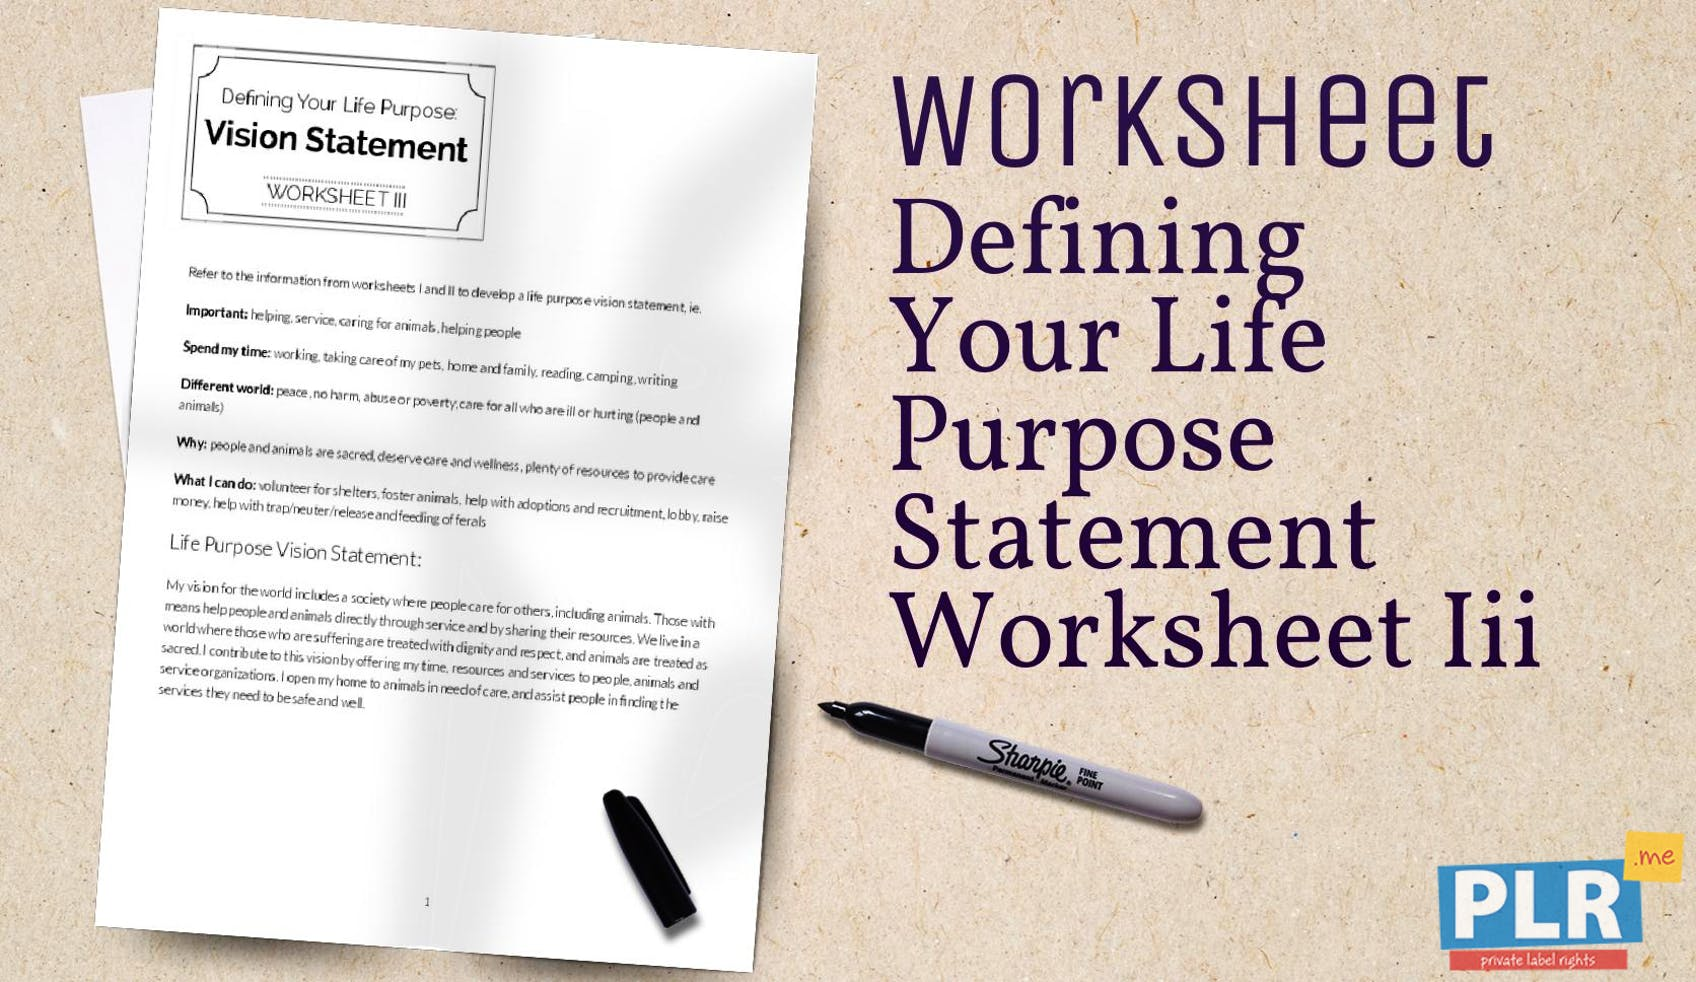 Plr Worksheets Defining Your Life Purpose Statement Worksheet Iii